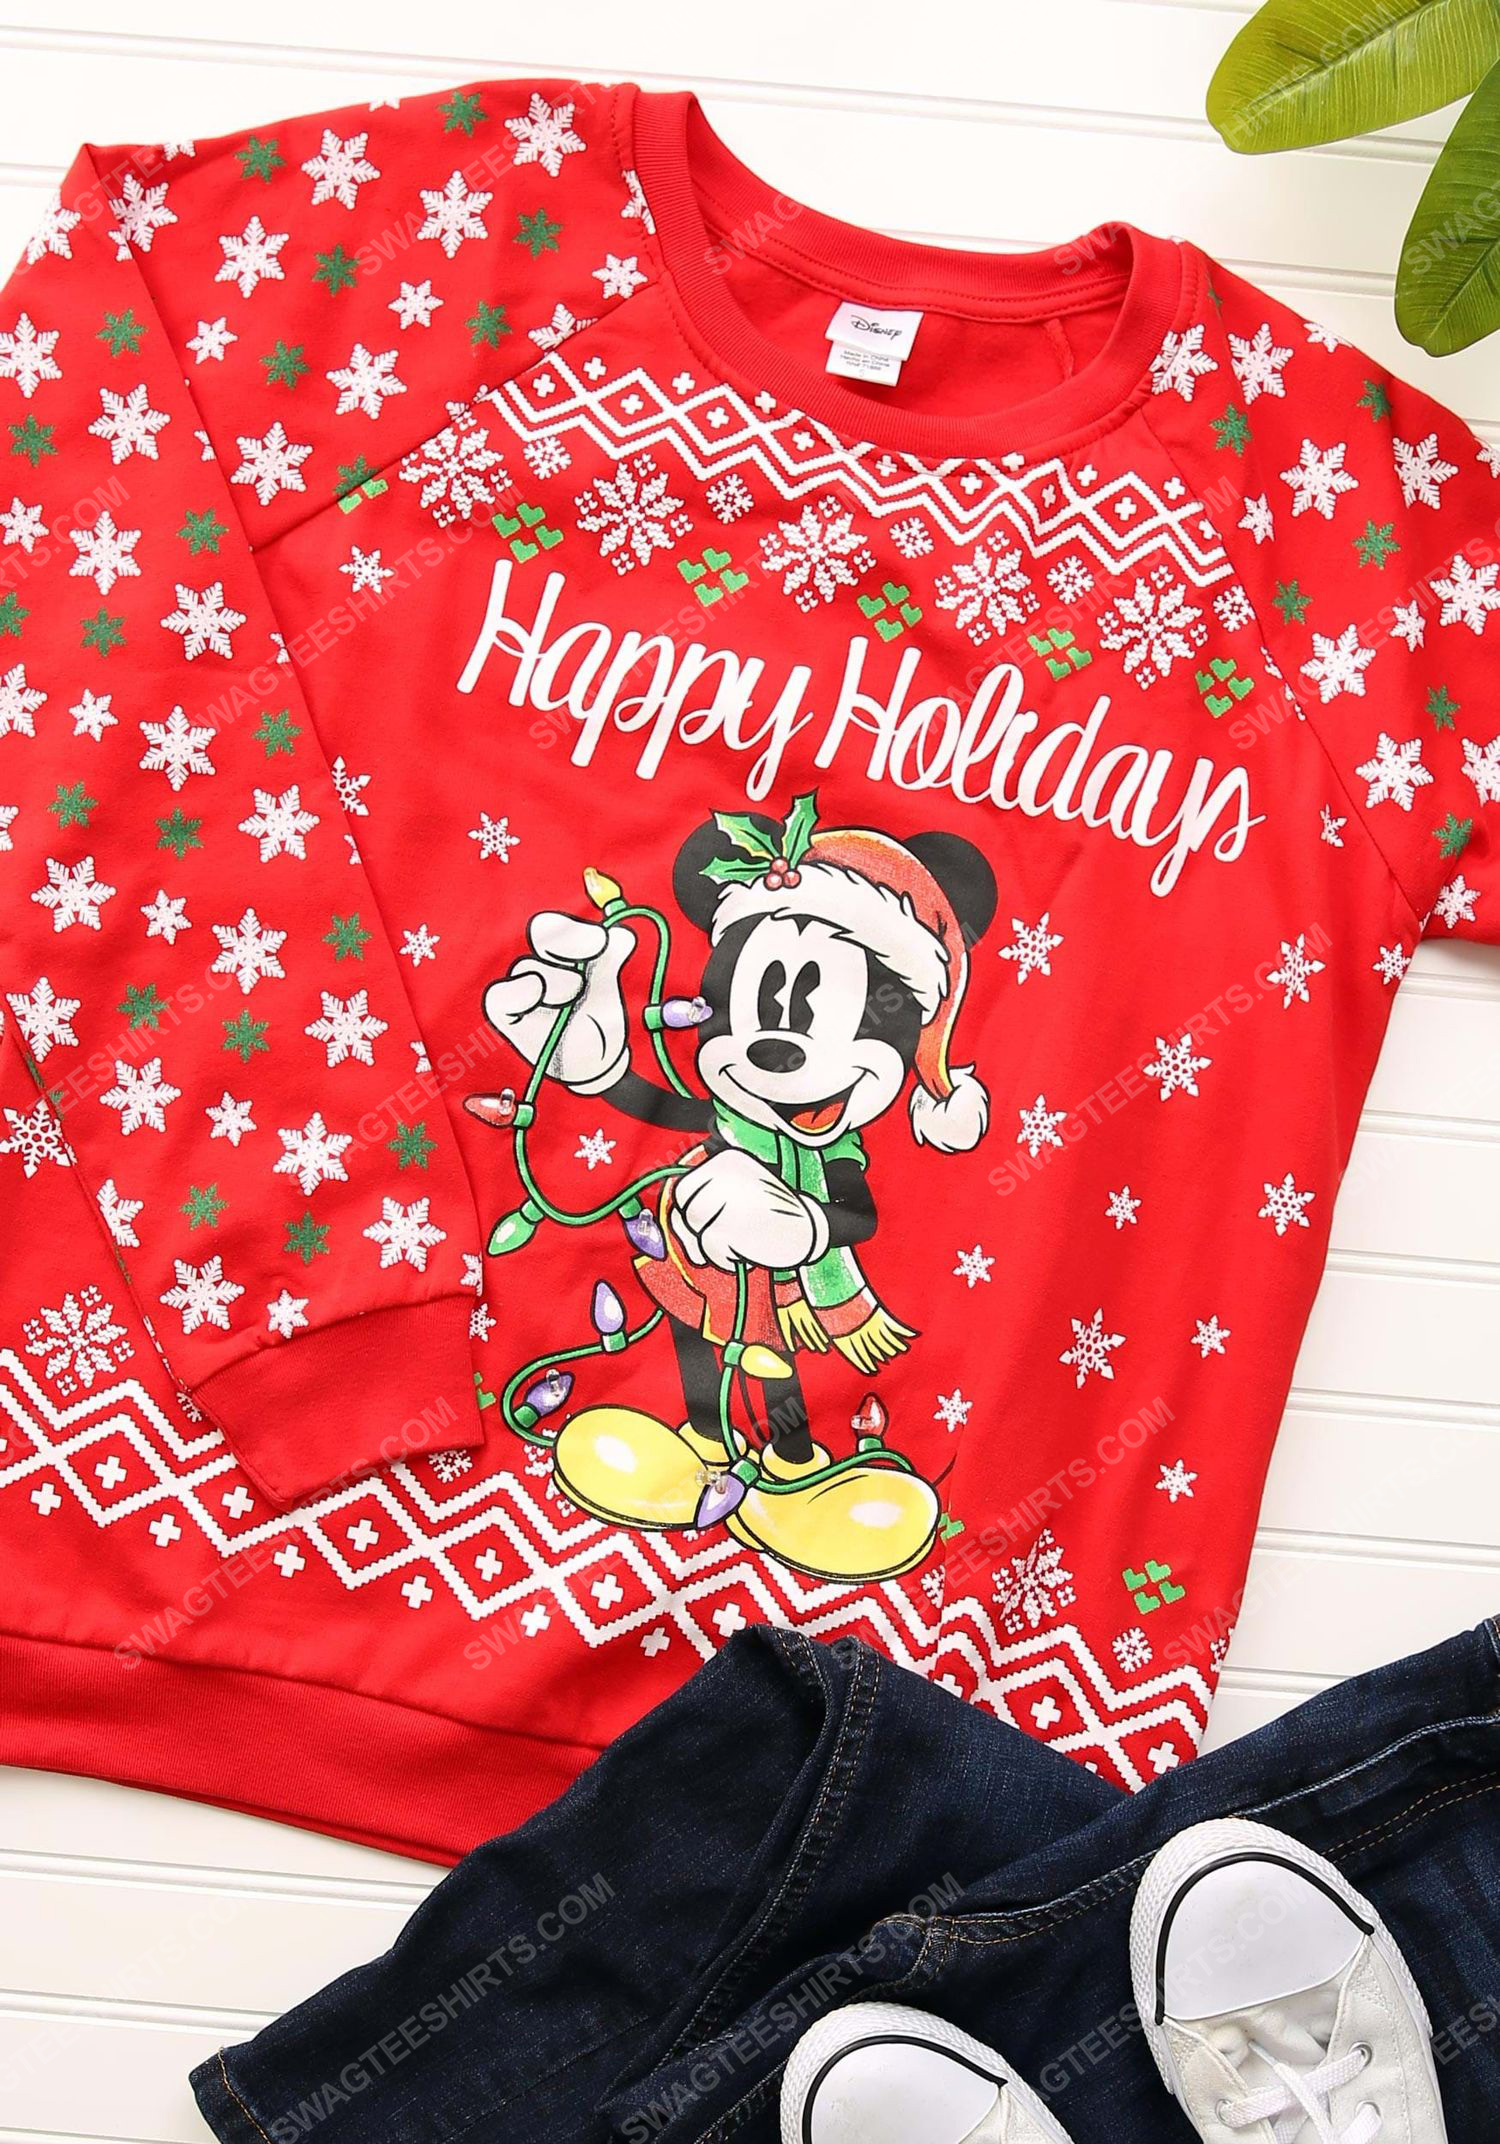 Mickey mouse happy holidays light up full print ugly christmas sweater 1